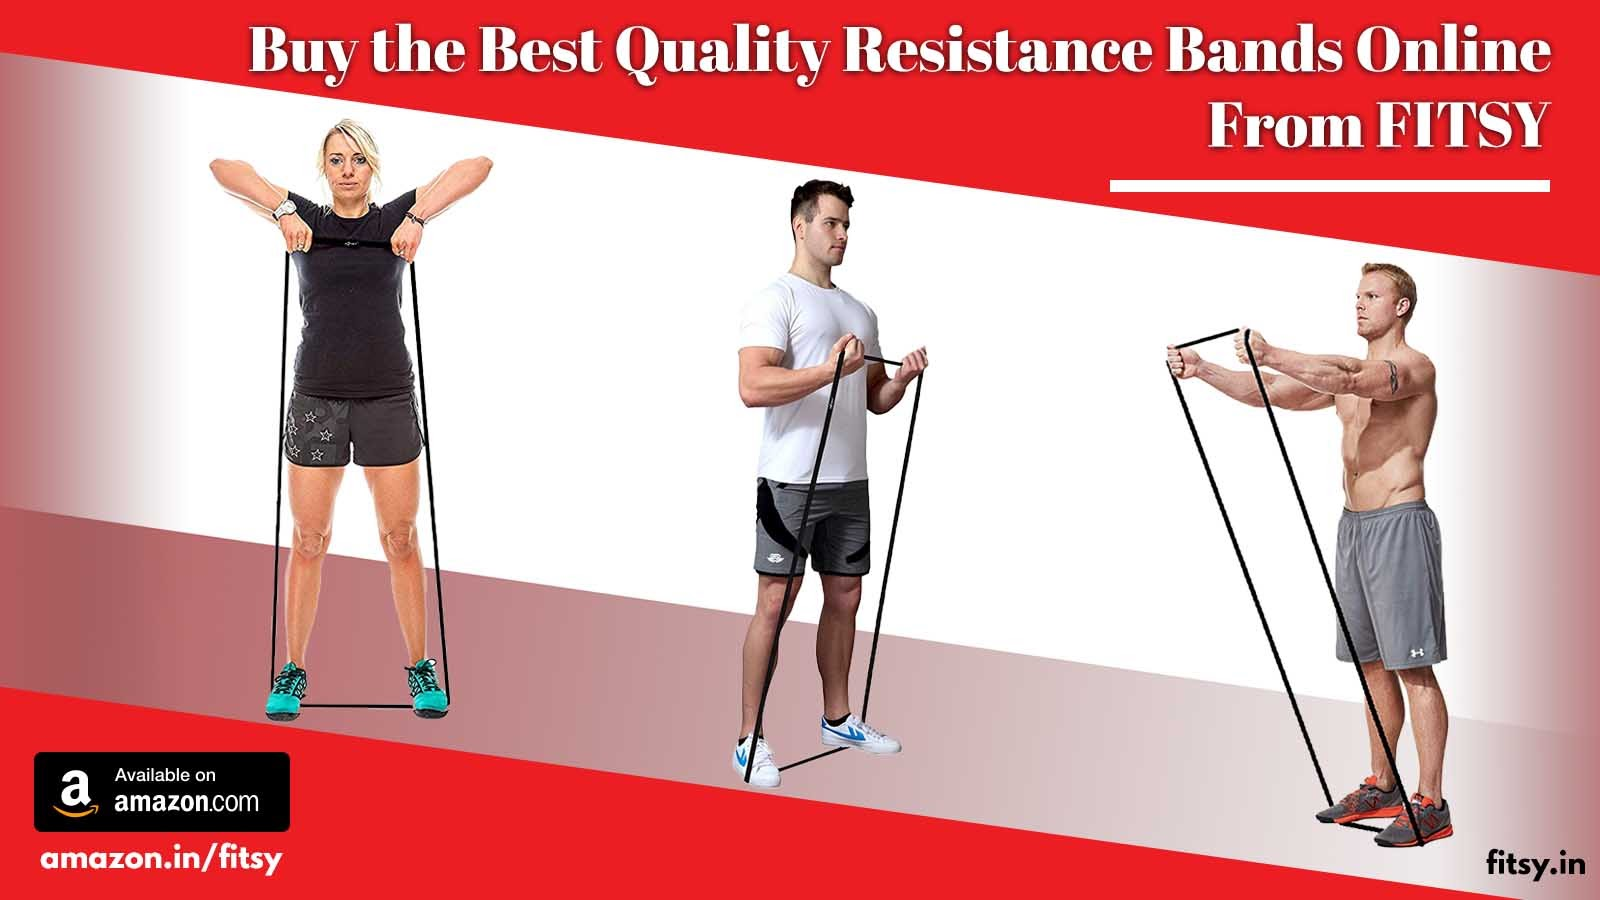 The Convenient Features of the Best Quality Resistance Bands Available Online